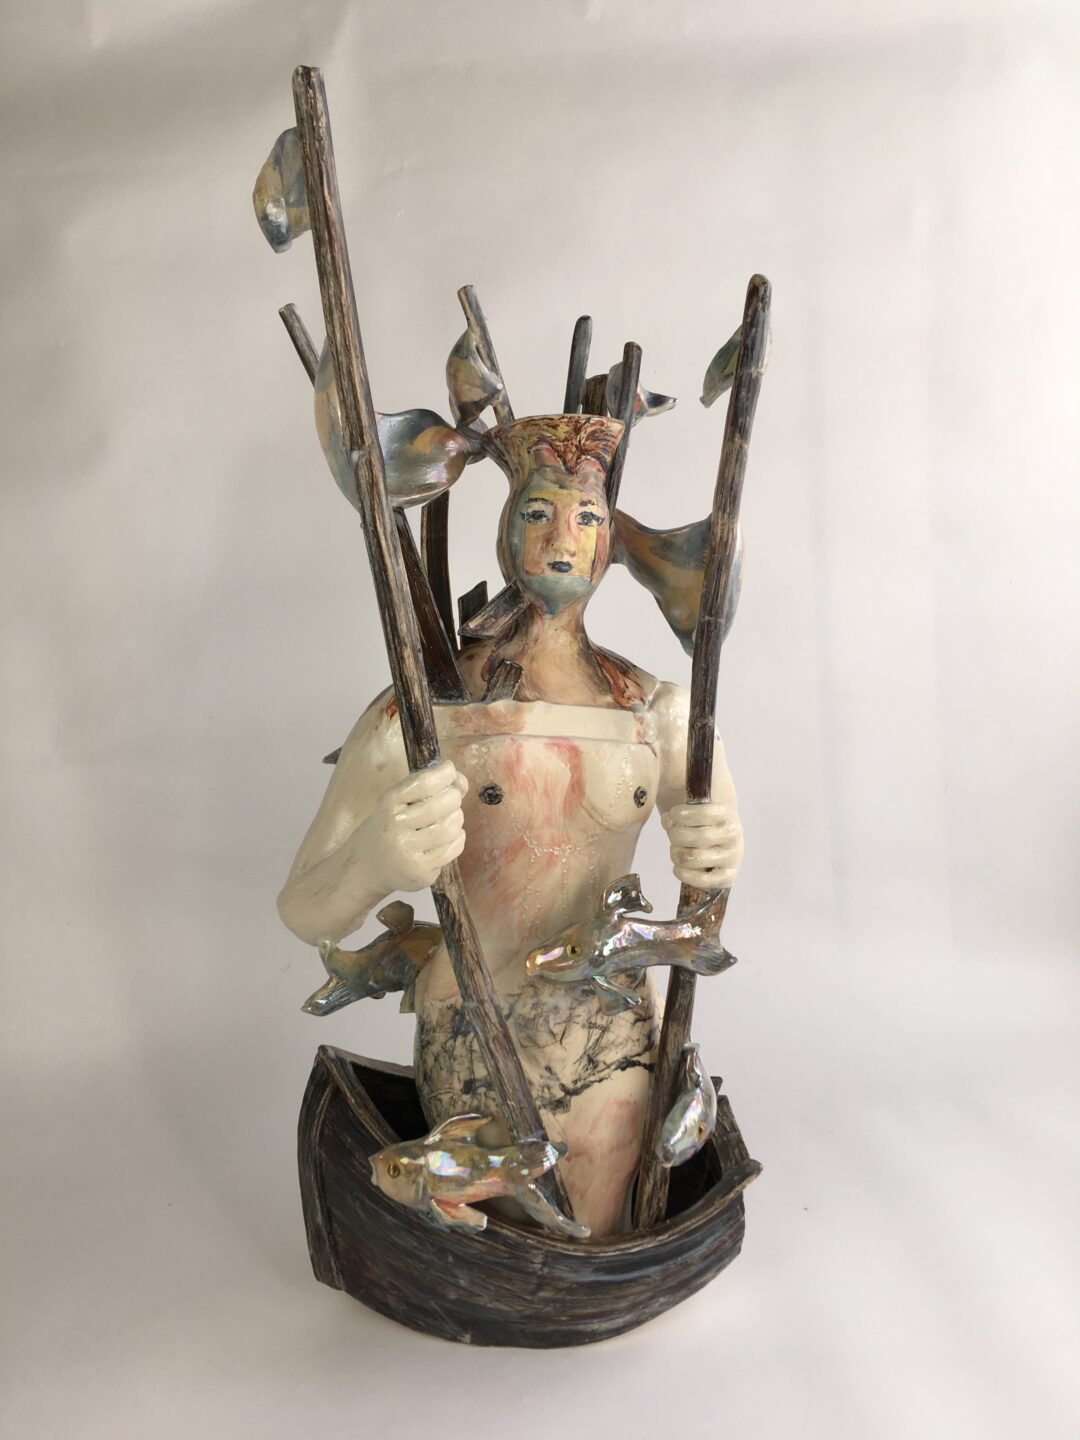 Show and Tell Girl 2 ceramic sculpture